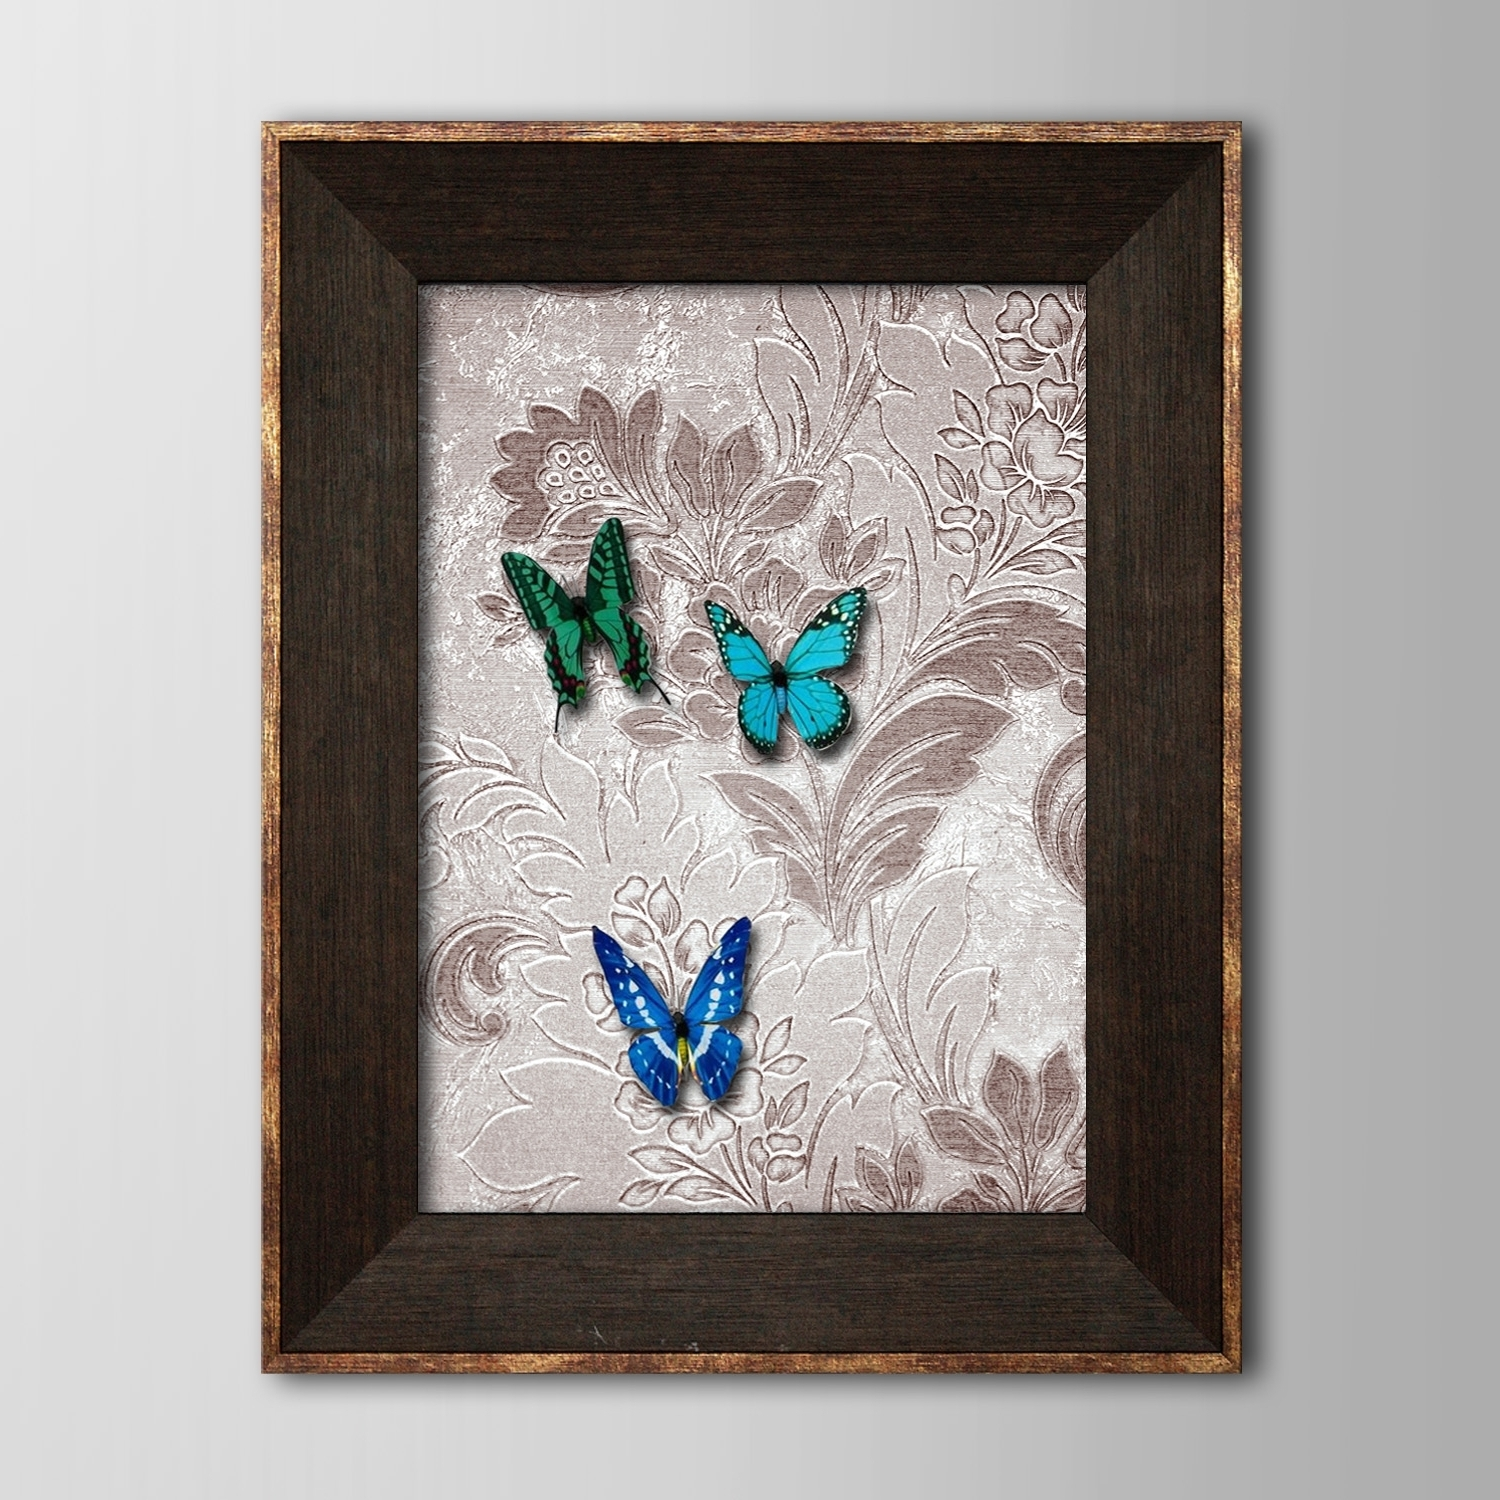 Framed 3D Wall Art Inside Well Known Framed 3D Art Wall Art , Animal 3D Butterflies Three Butterflies (View 6 of 15)